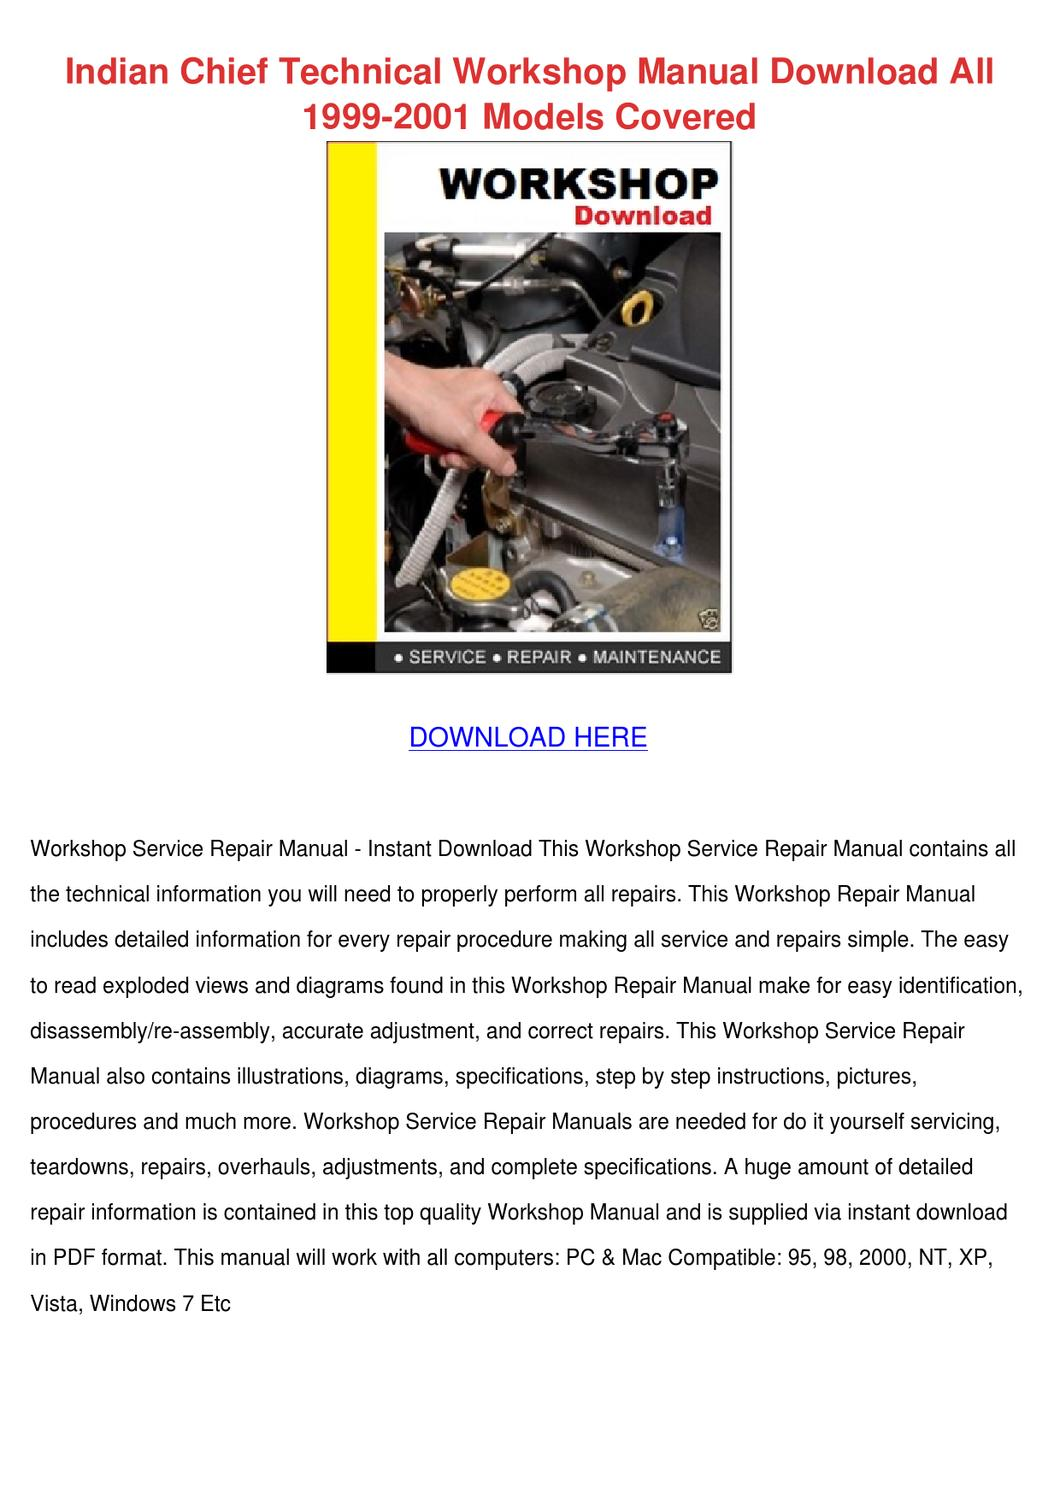 Indian Chief Technical Workshop Manual Downlo by Hortensia Rinehimer - issuu